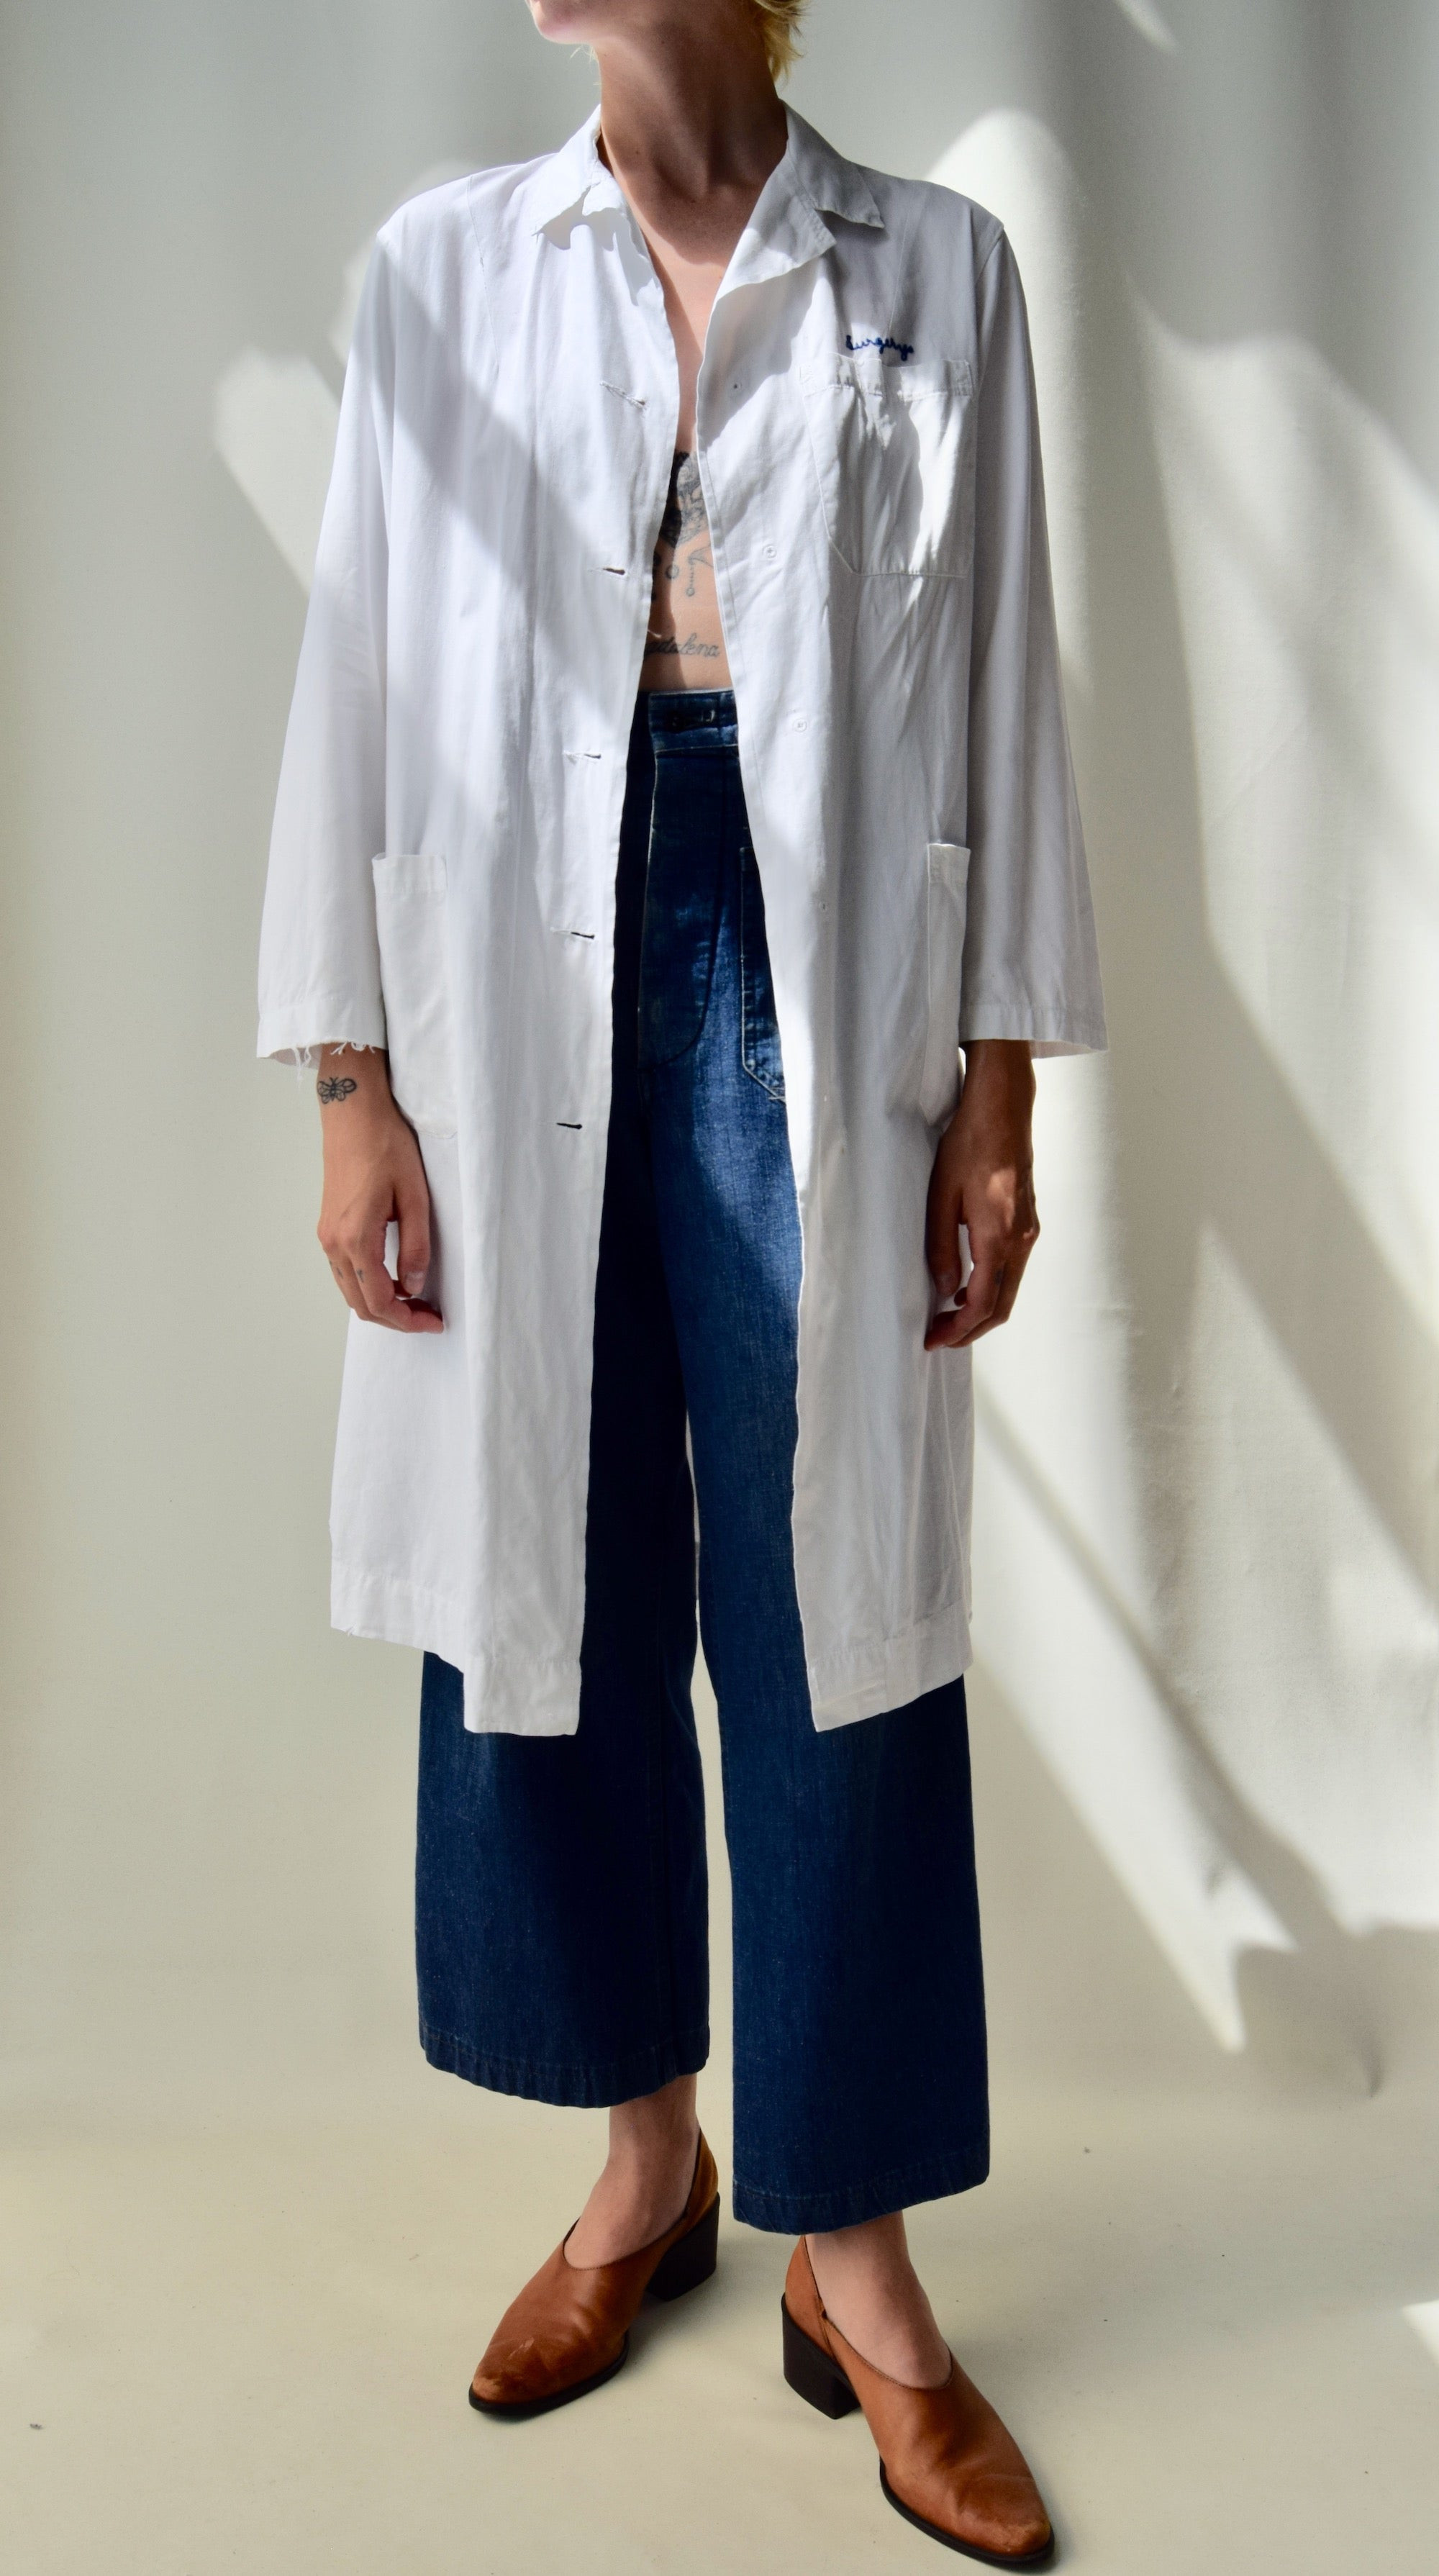 Vintage Medical Lab Coat